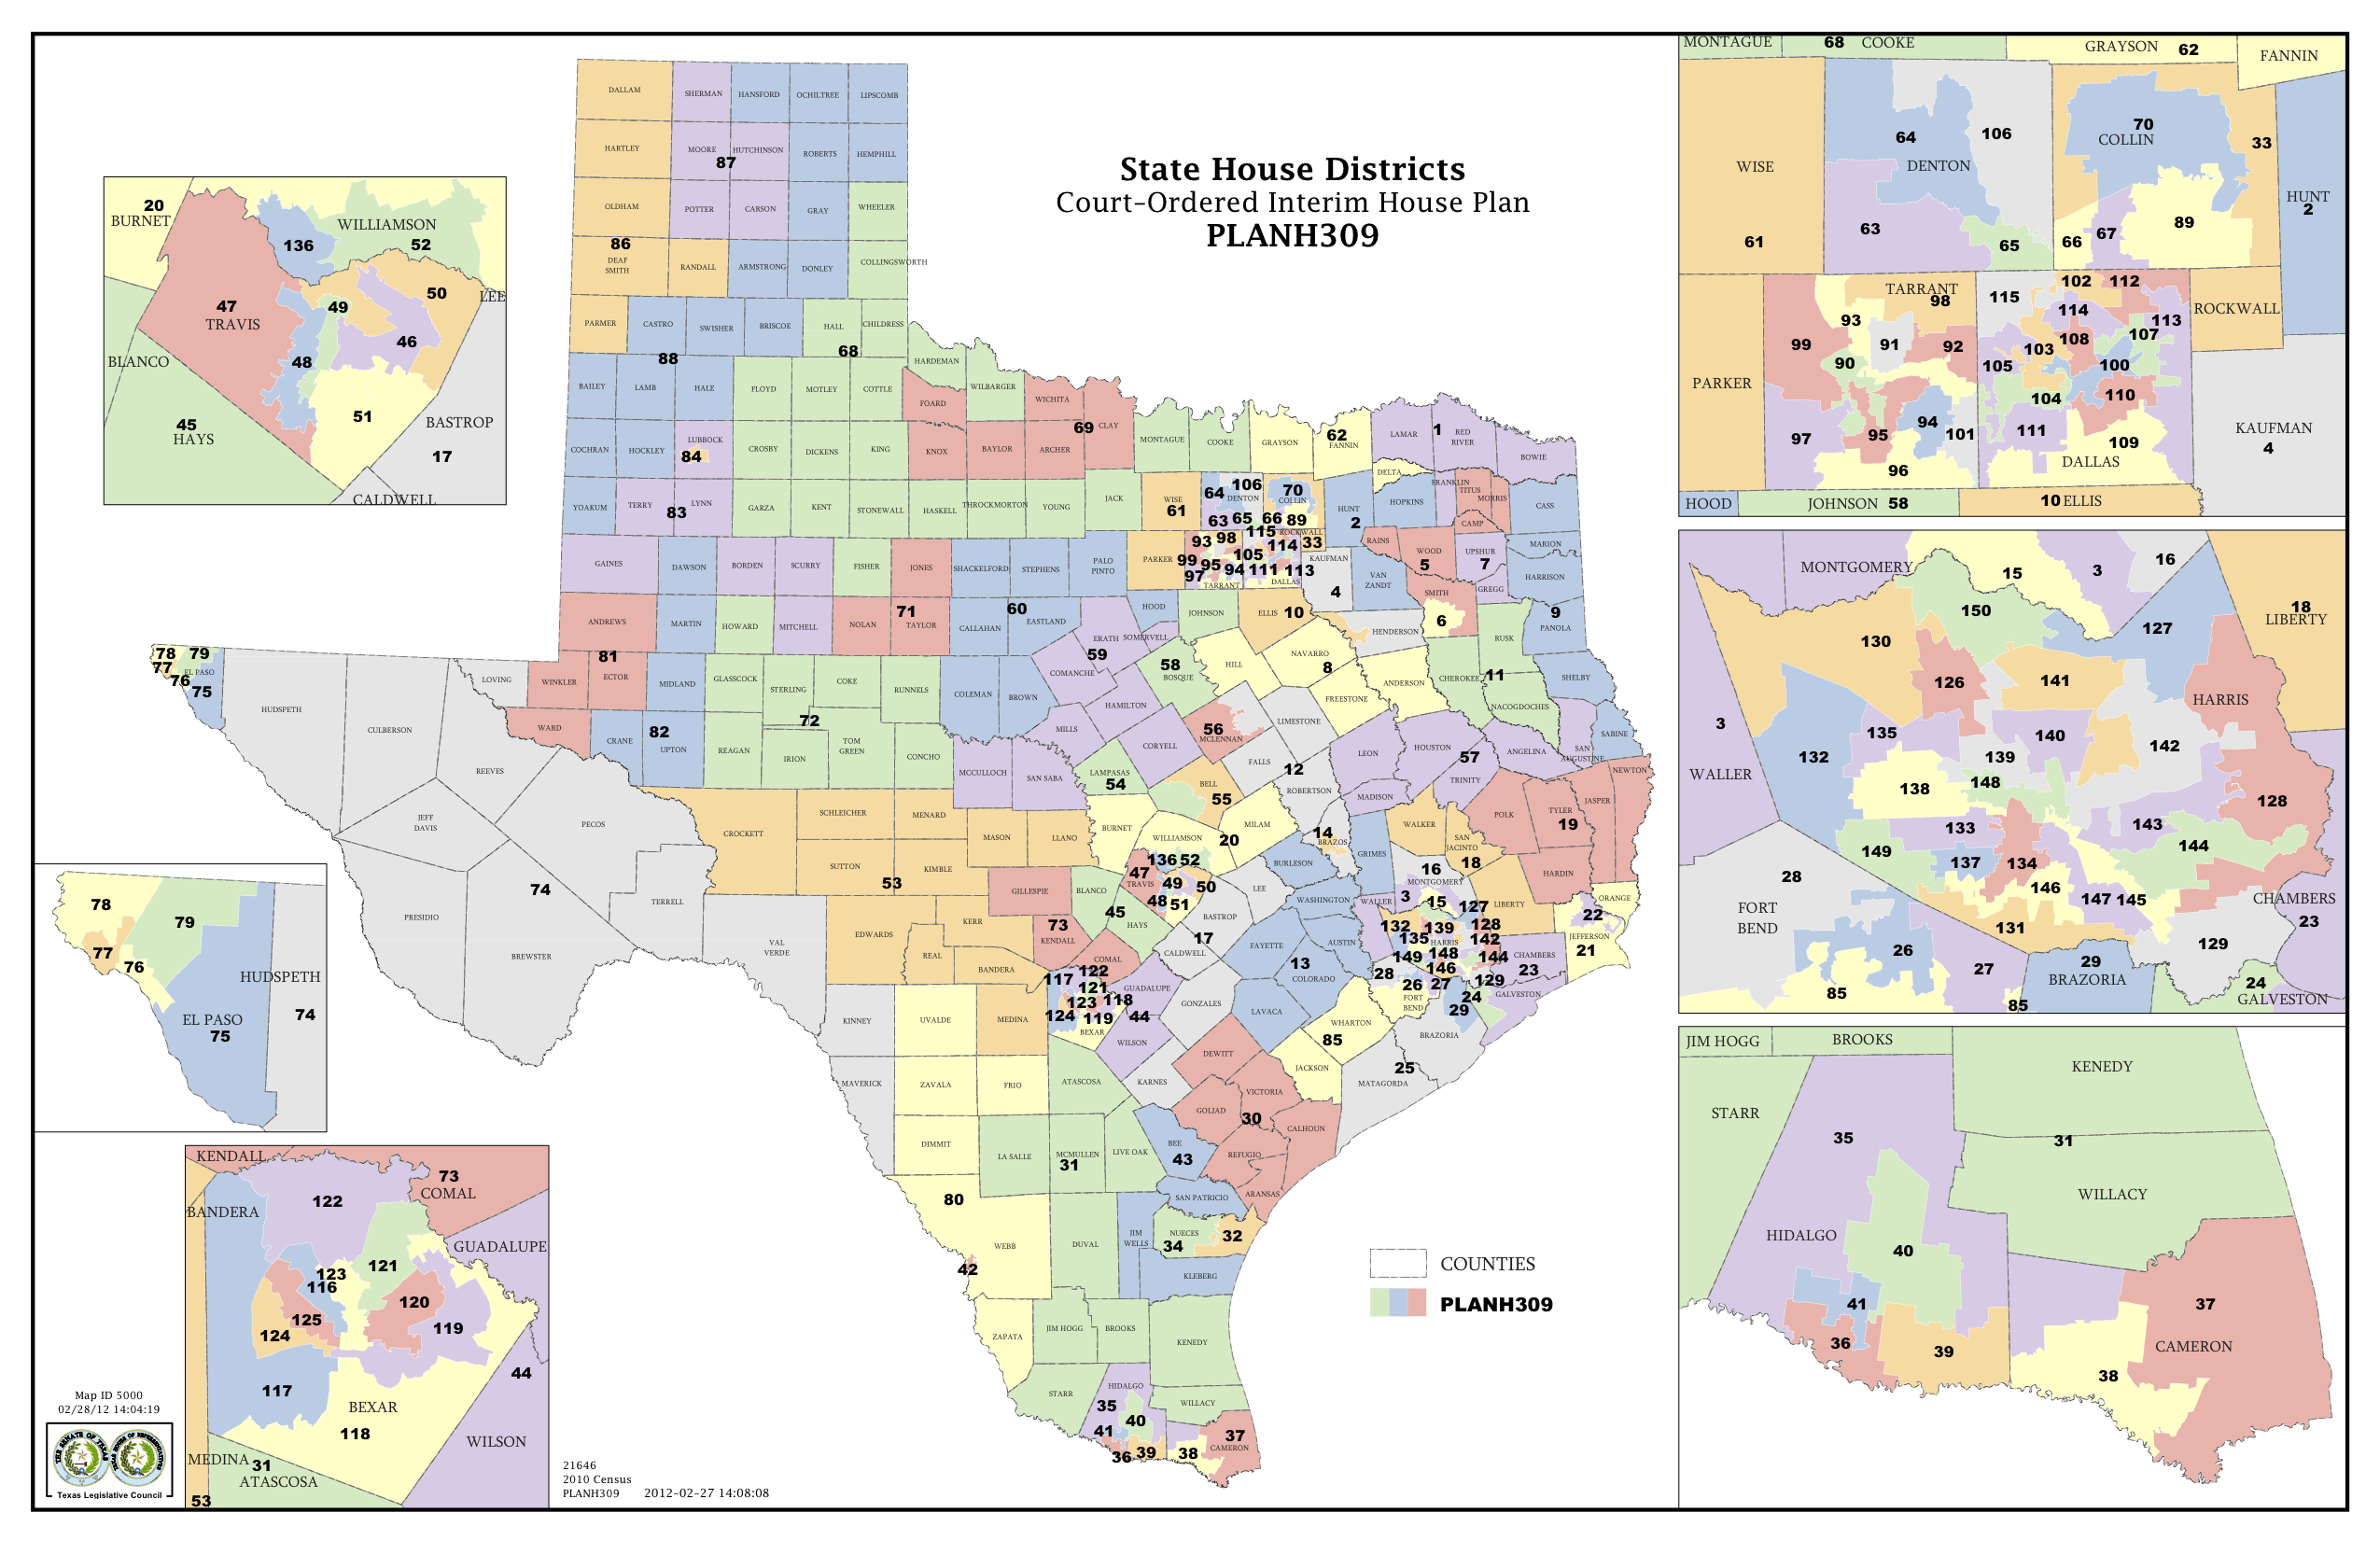 Texas House Districts Map | Business Ideas 2013 - Texas State House District Map